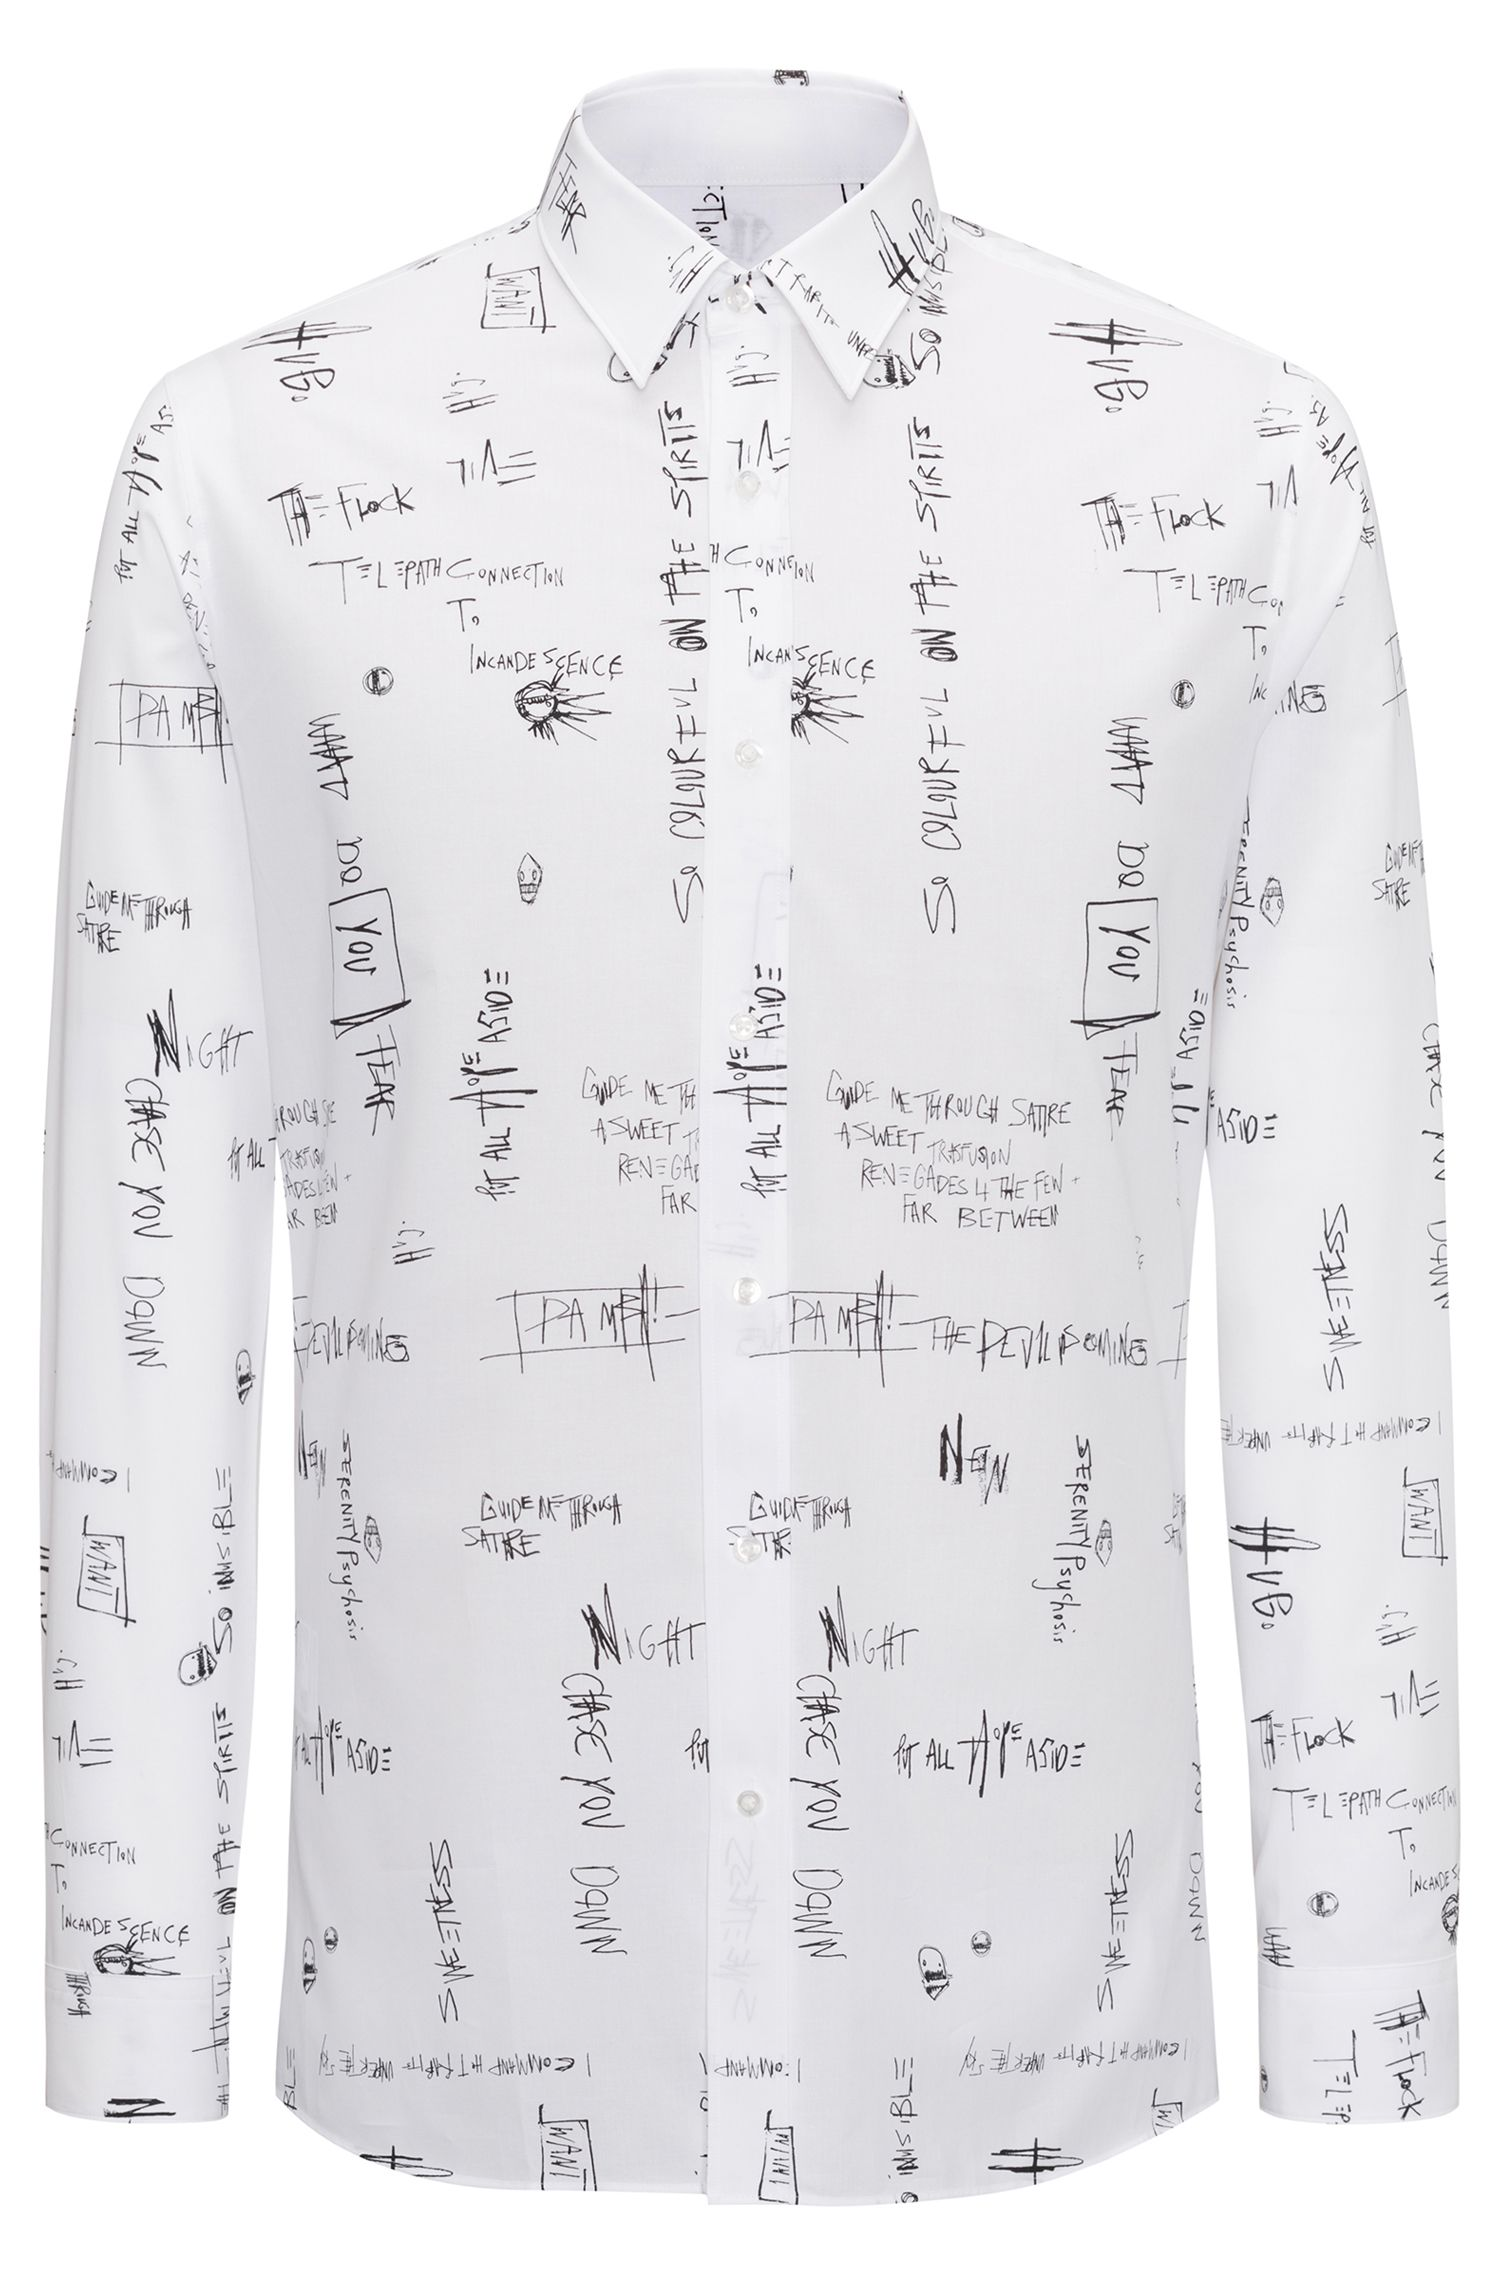 Slogan-printed cotton shirt in an extra-slim fit